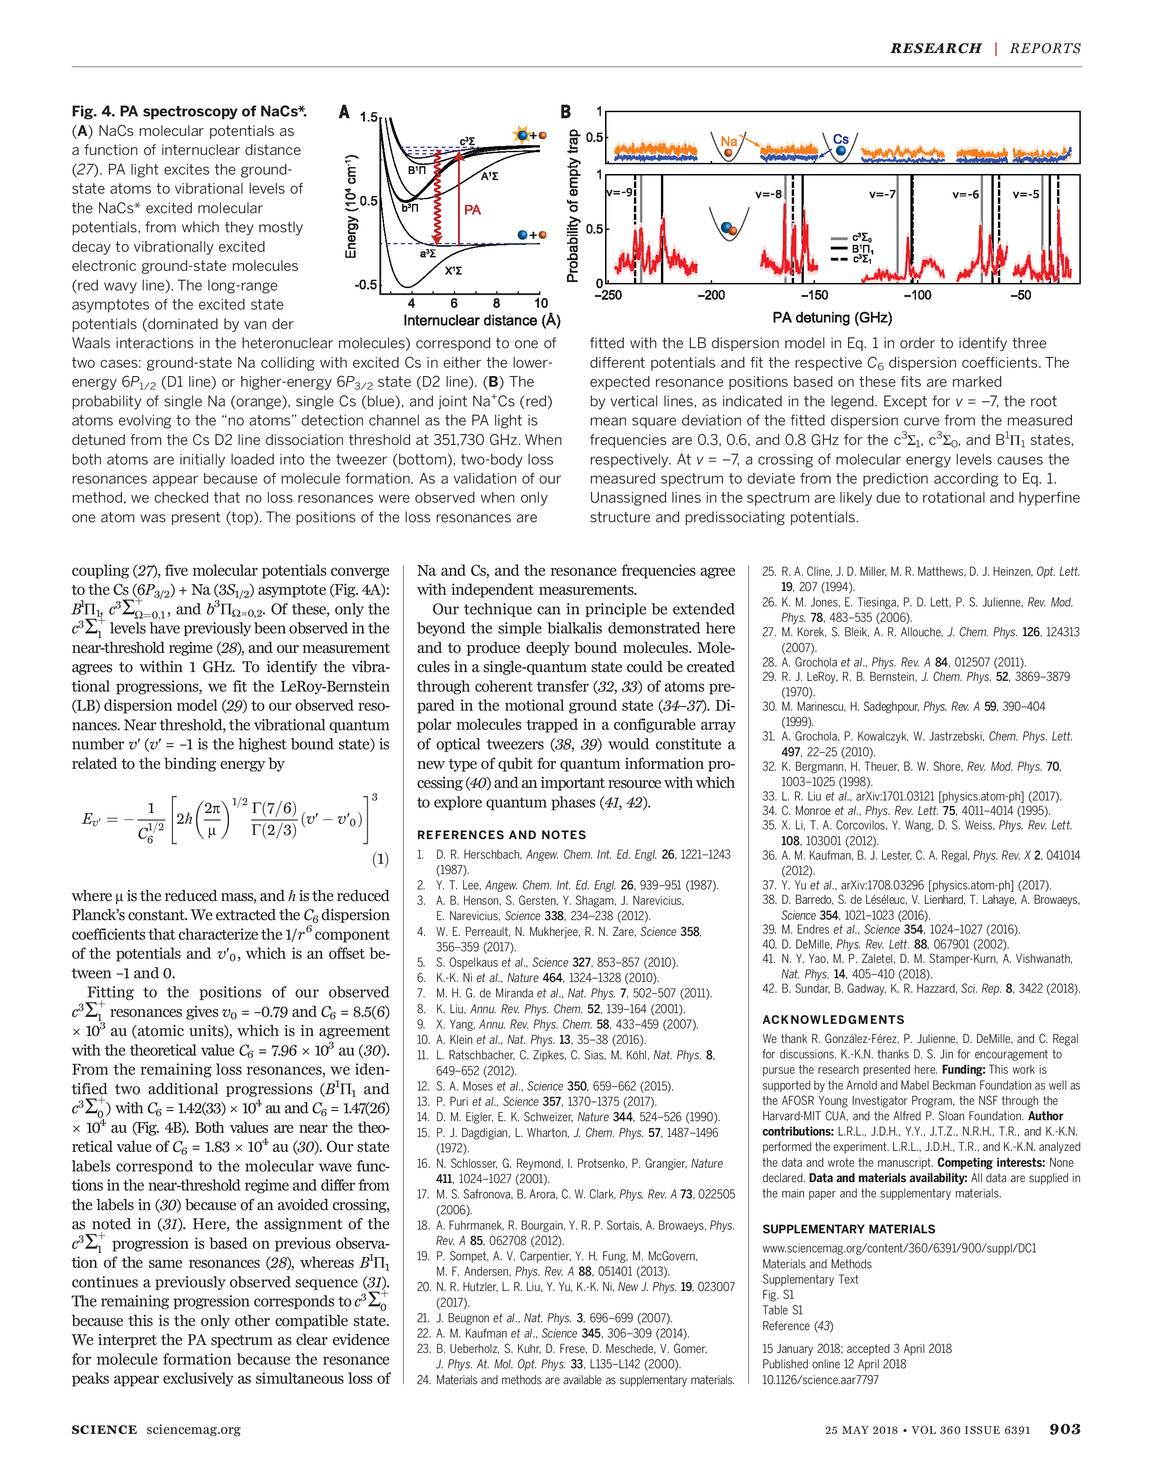 Amf Bz science magazine - may 25, 2018 - page 904